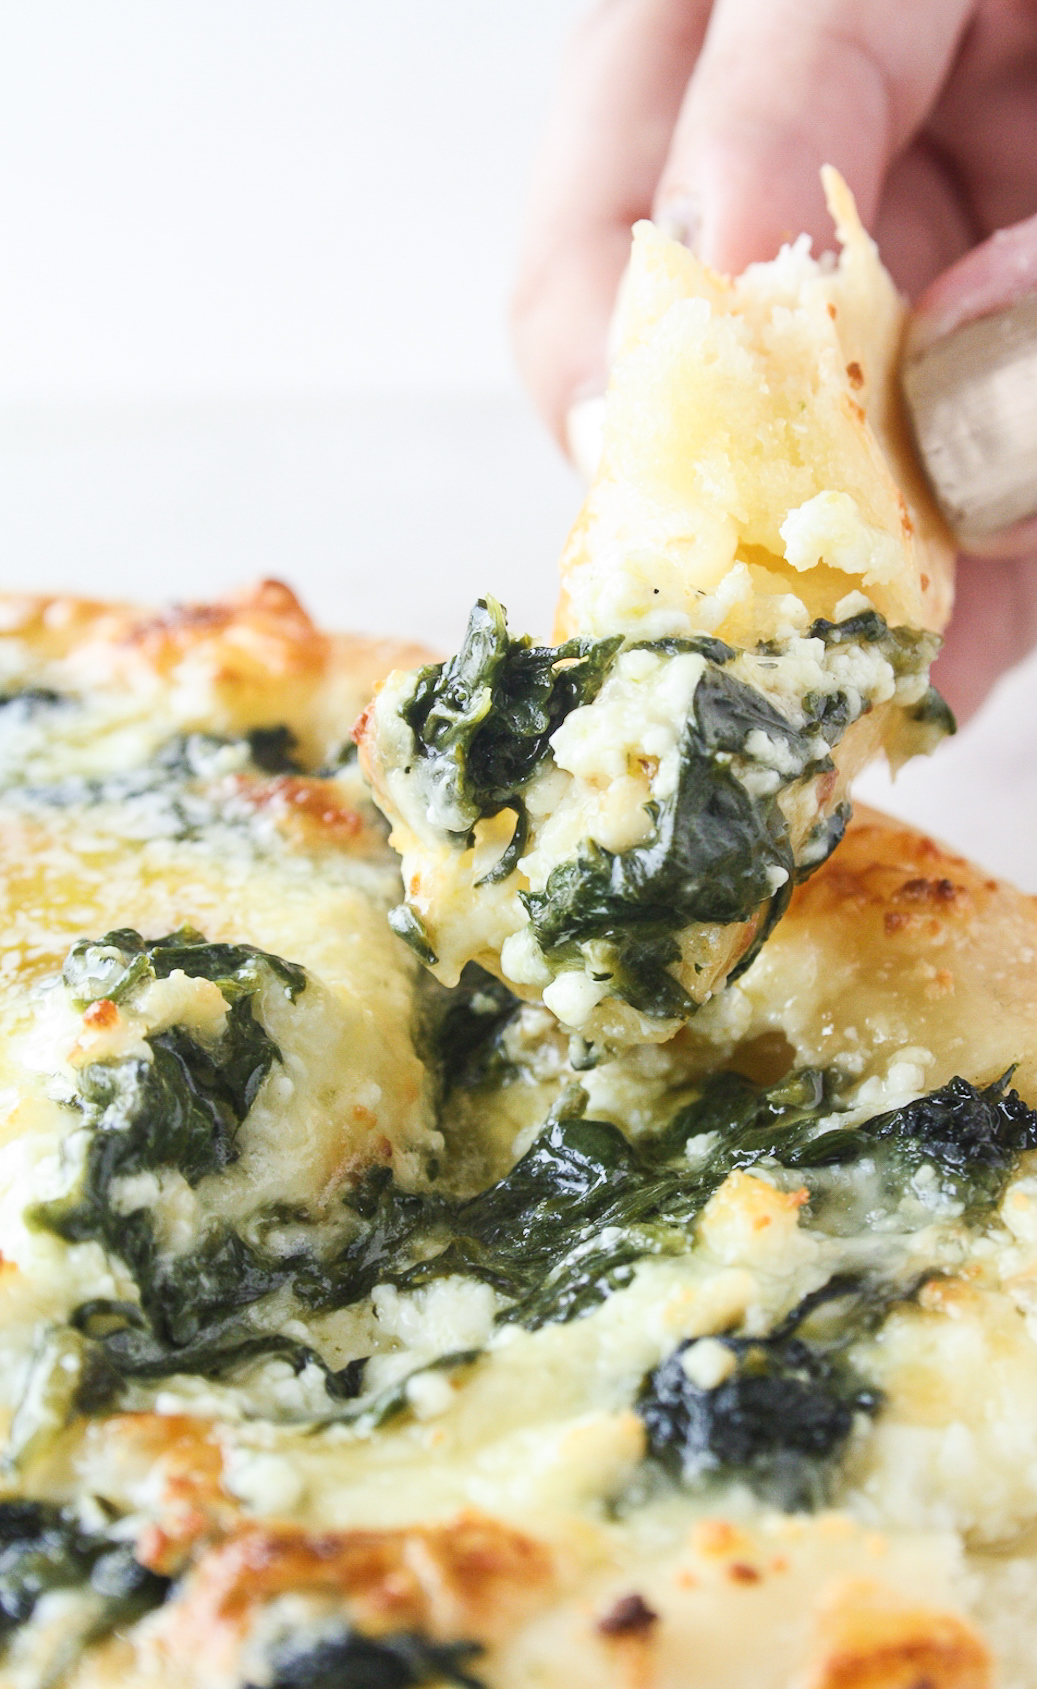 An eggless version of Khachapuri, a Georgian cheese-stuffed bread with spinach!